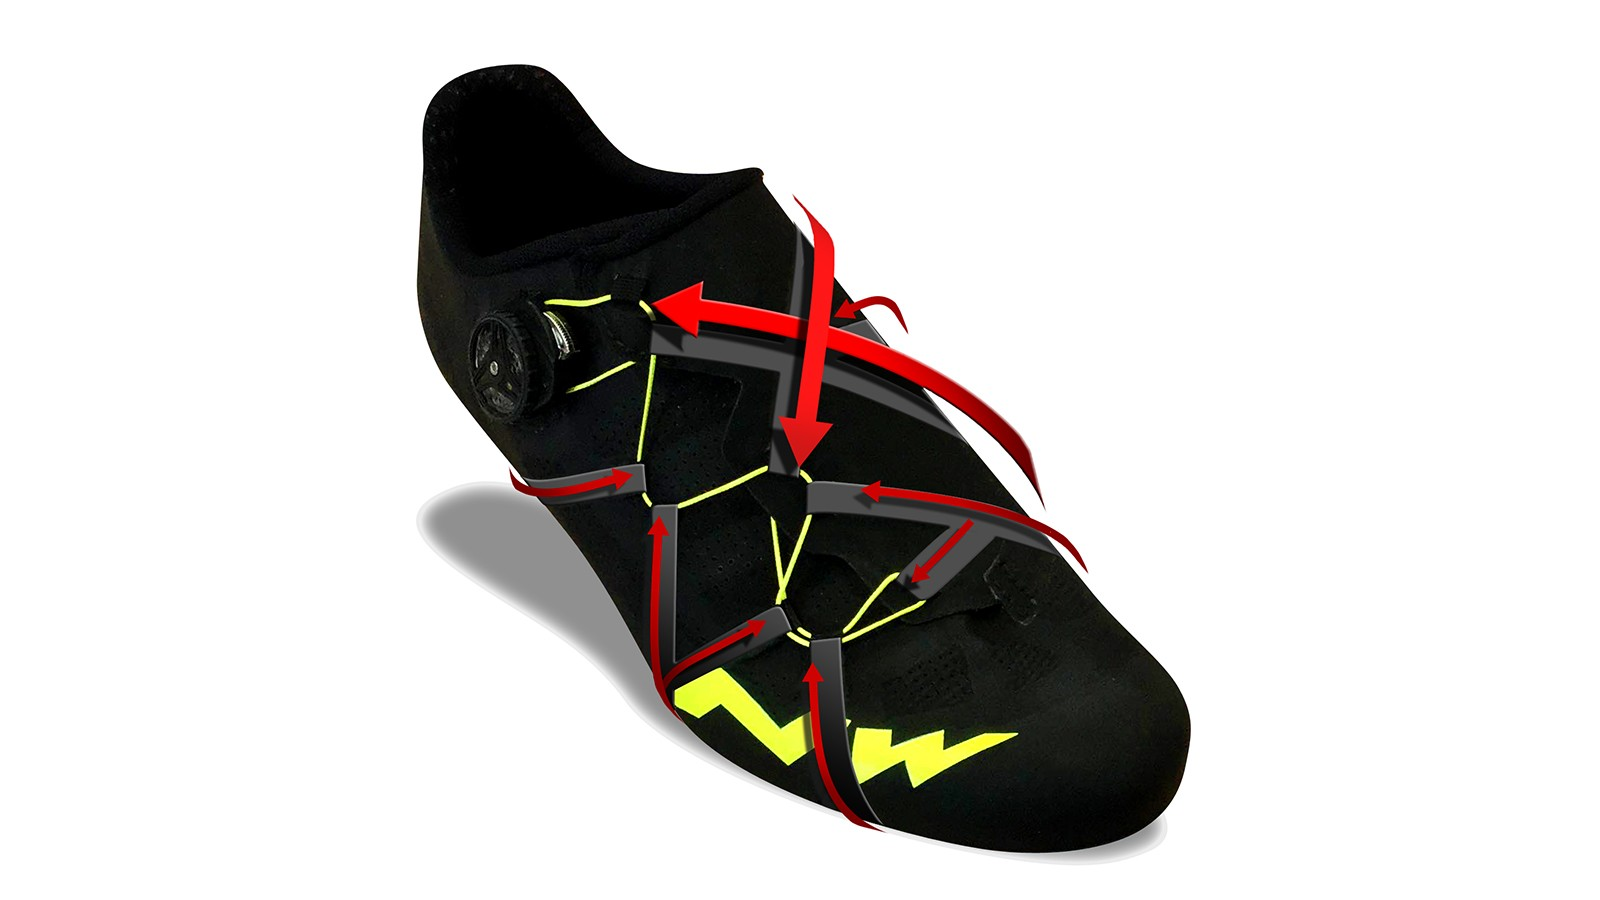 The XFrame wraps all the way around the foot for a secure fit with no pressure points